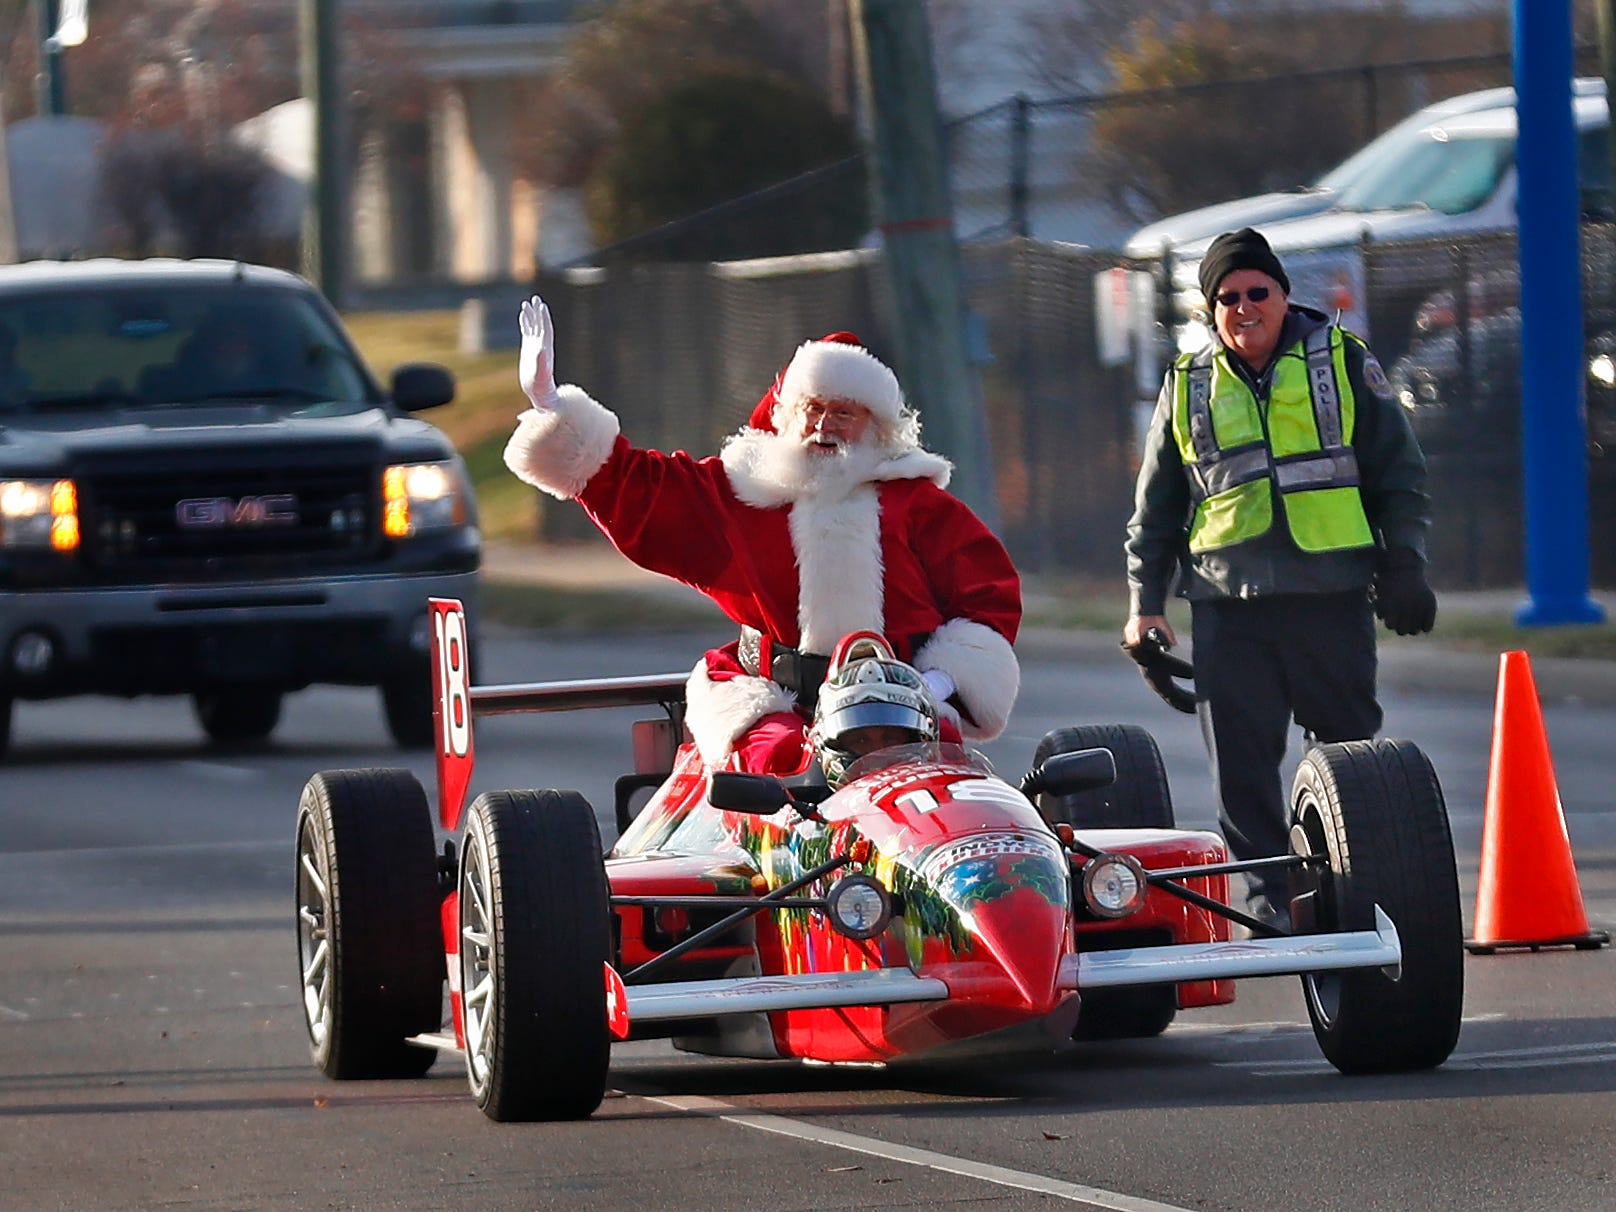 Santa arrives at the Children's Museum of Indianapolis in an IndyCar driven by racer Ed Carpenter, Friday, Nov. 23, 2018.